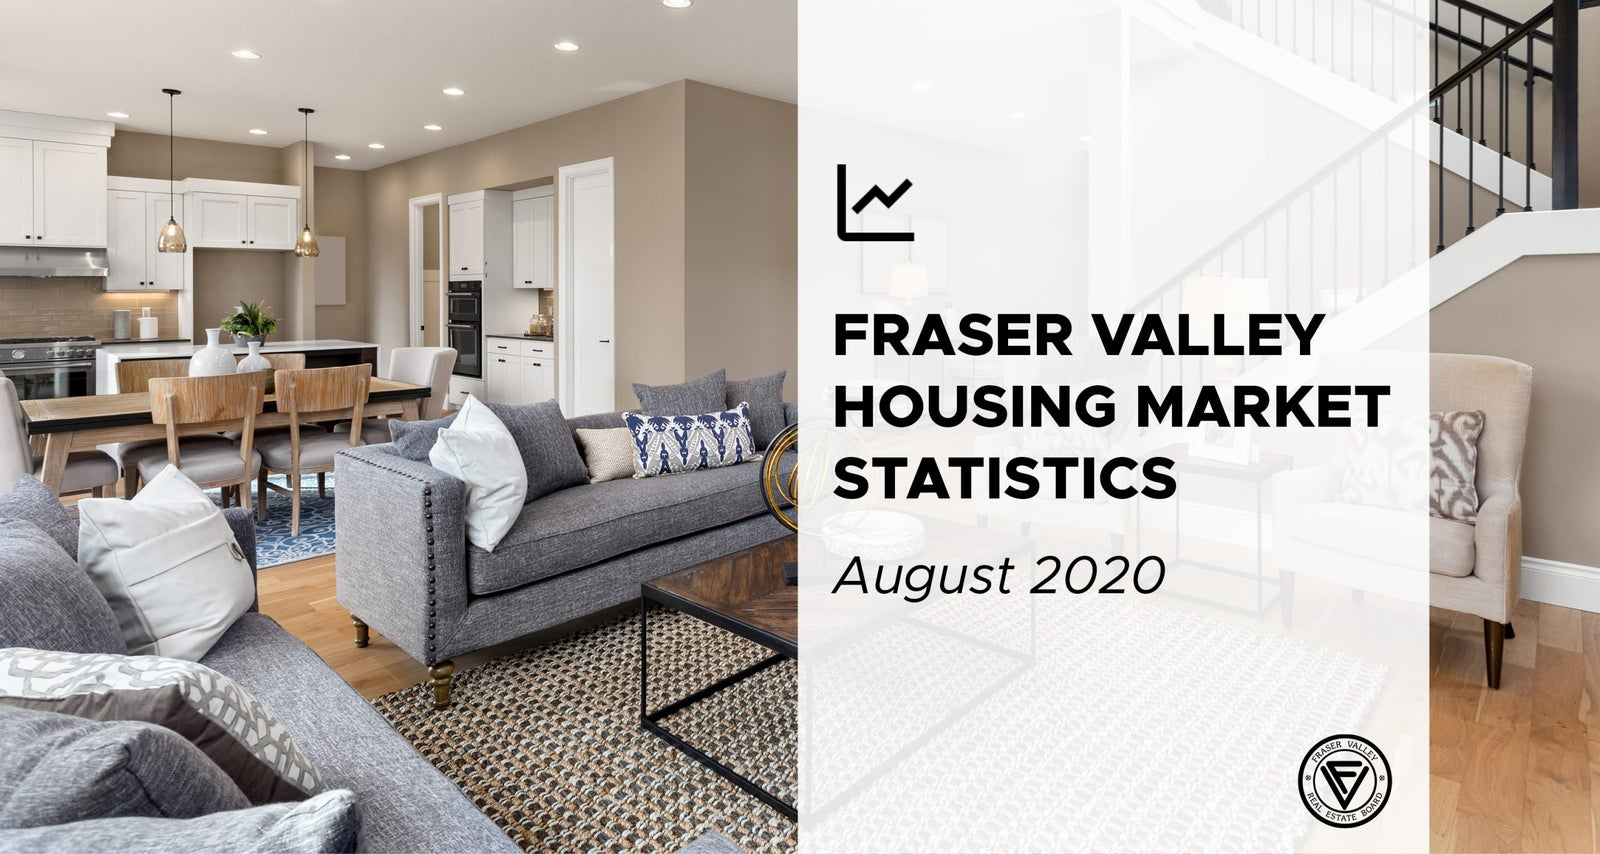 Fraser Valley Housing Market Statistics for August 2020